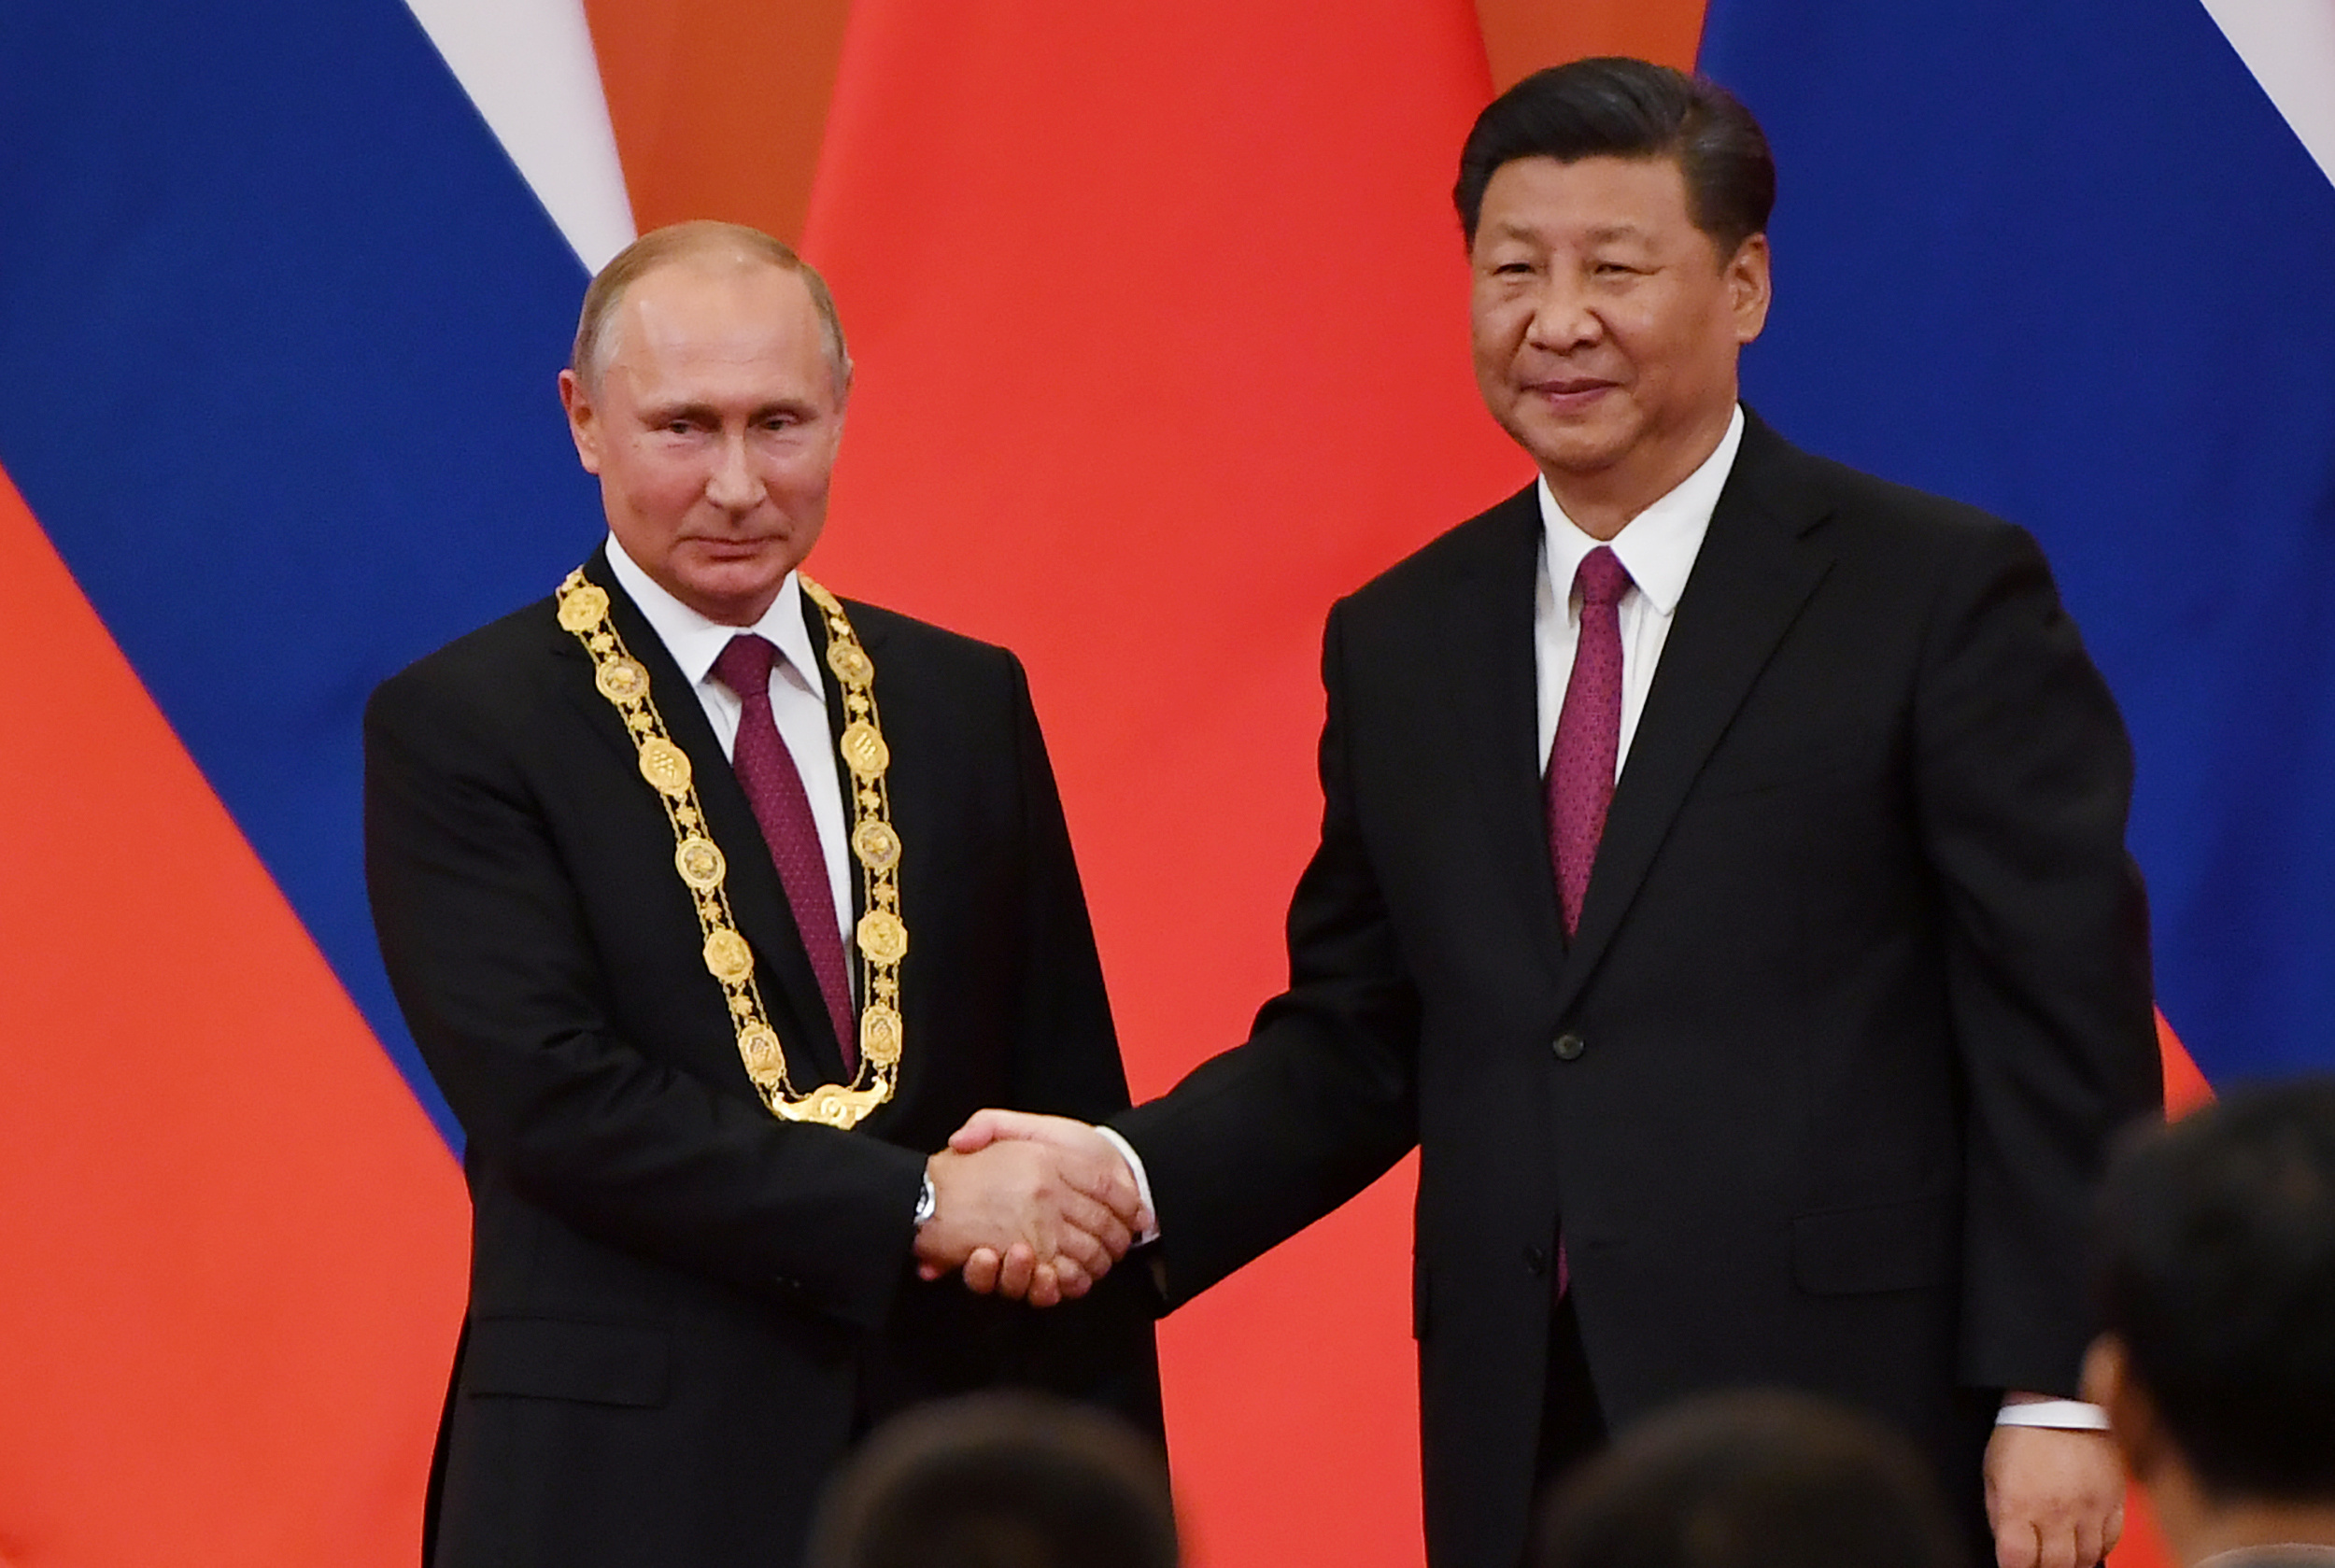 Chinese President Xi Jinping congratulates Russian President Vladimir Putin after presenting him with the Friendship Medal in the Great Hall of the People in Beijing